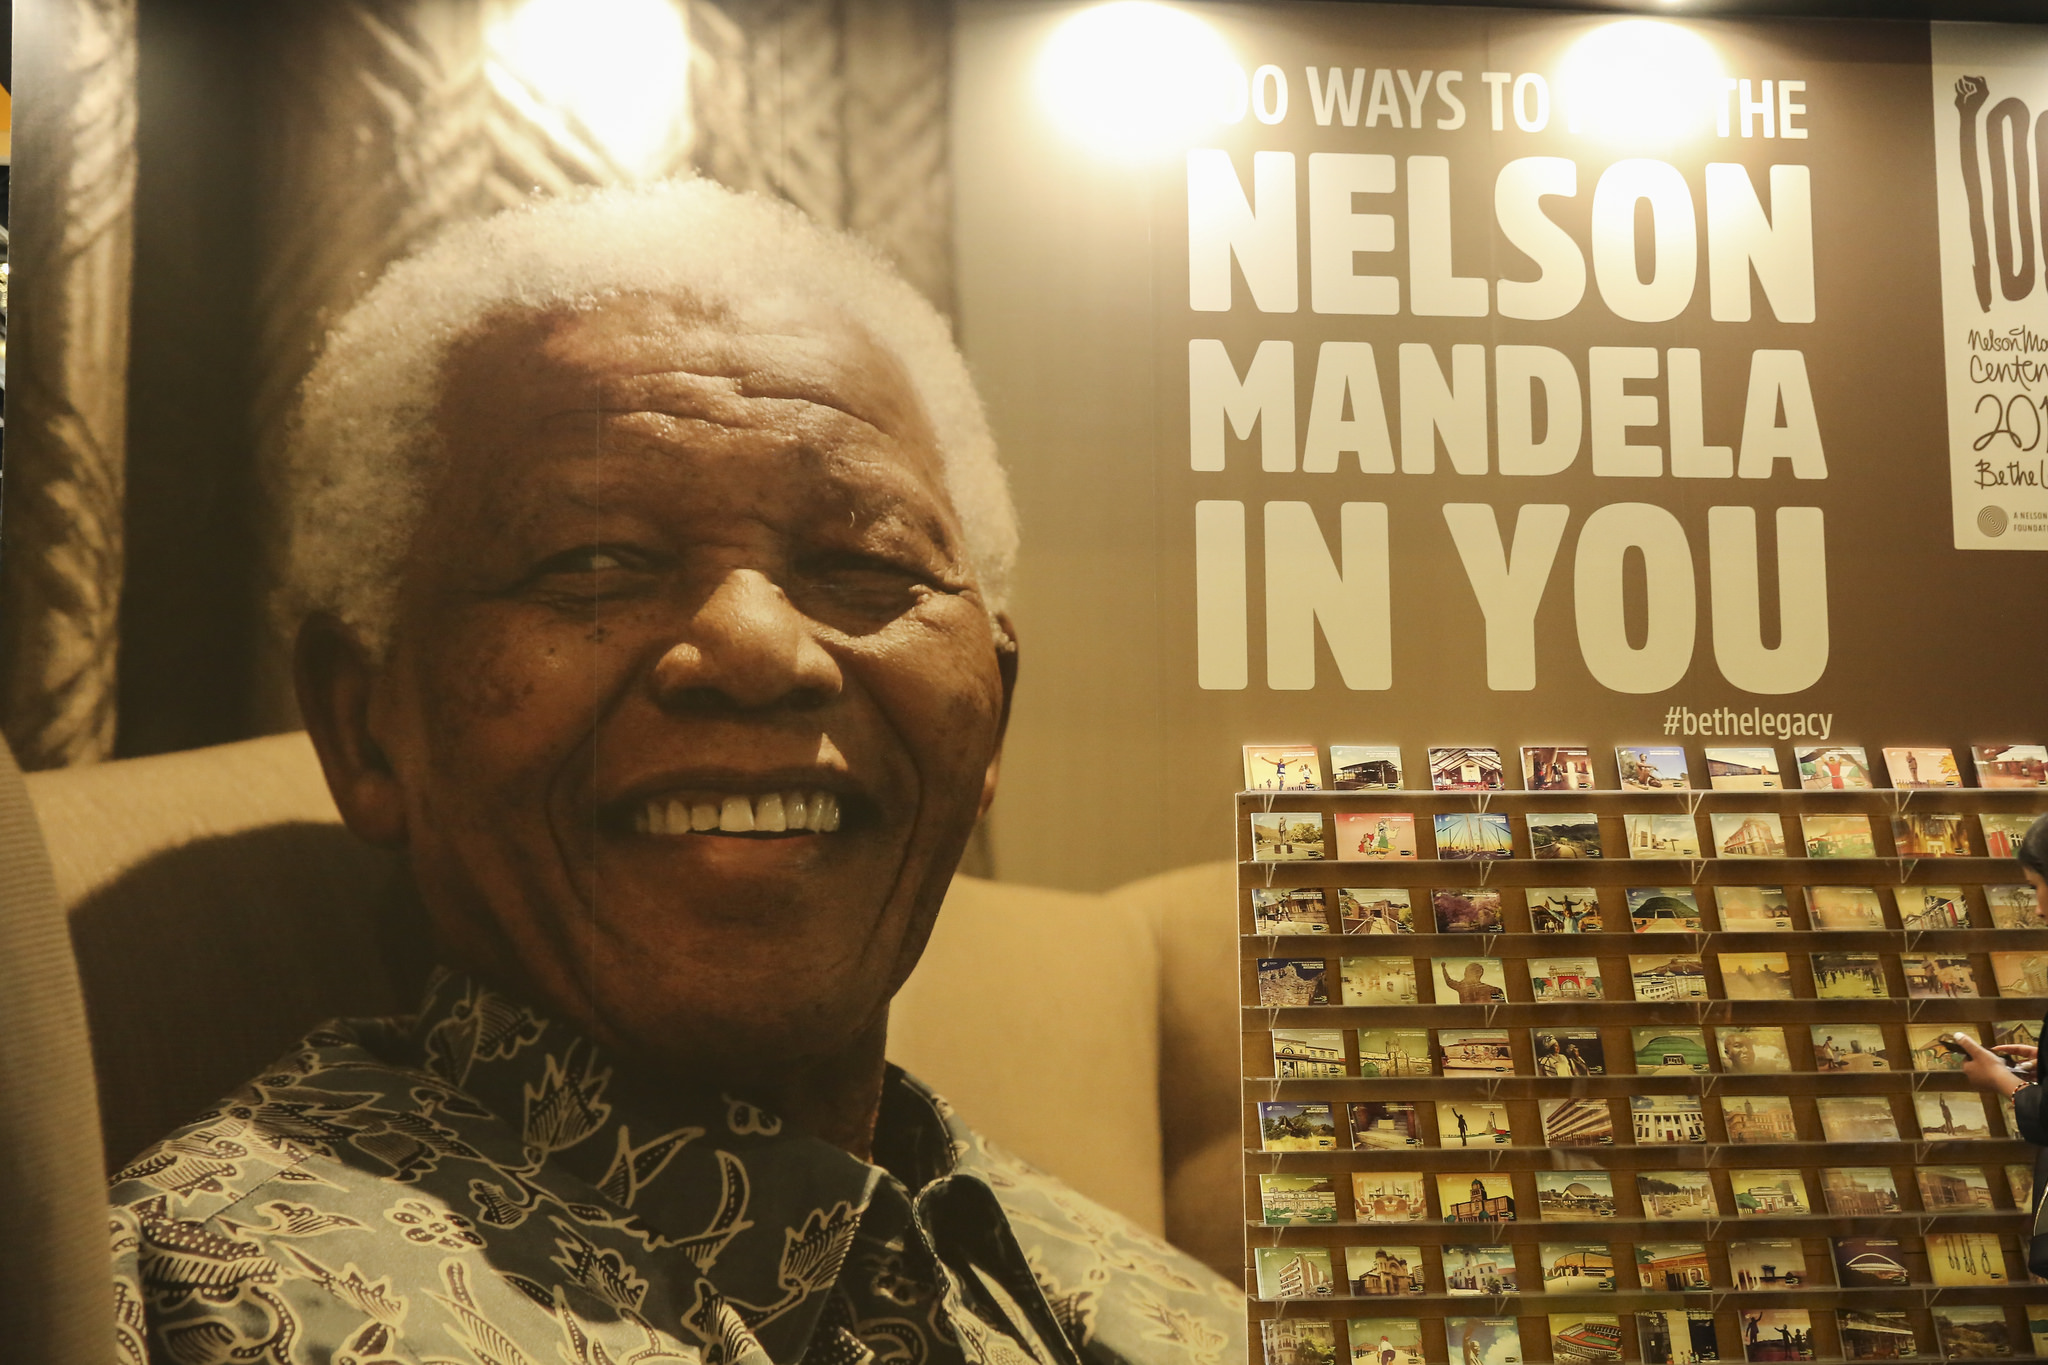 100 Ways to find Nelson Mandela in you